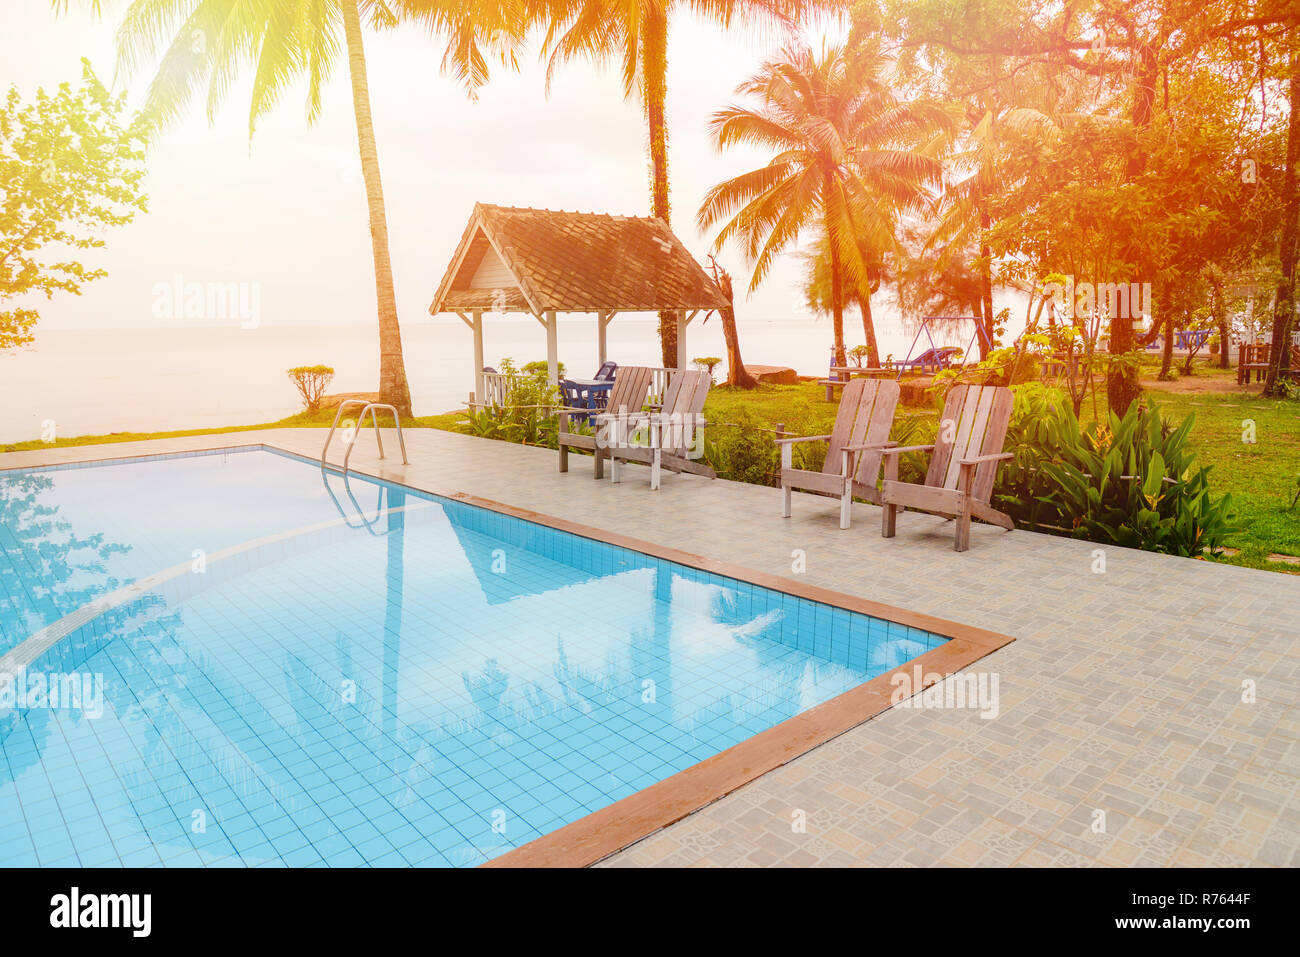 Pool With R Swimming Pool Water Beach Beautiful Swimming Pool Tiles Blue